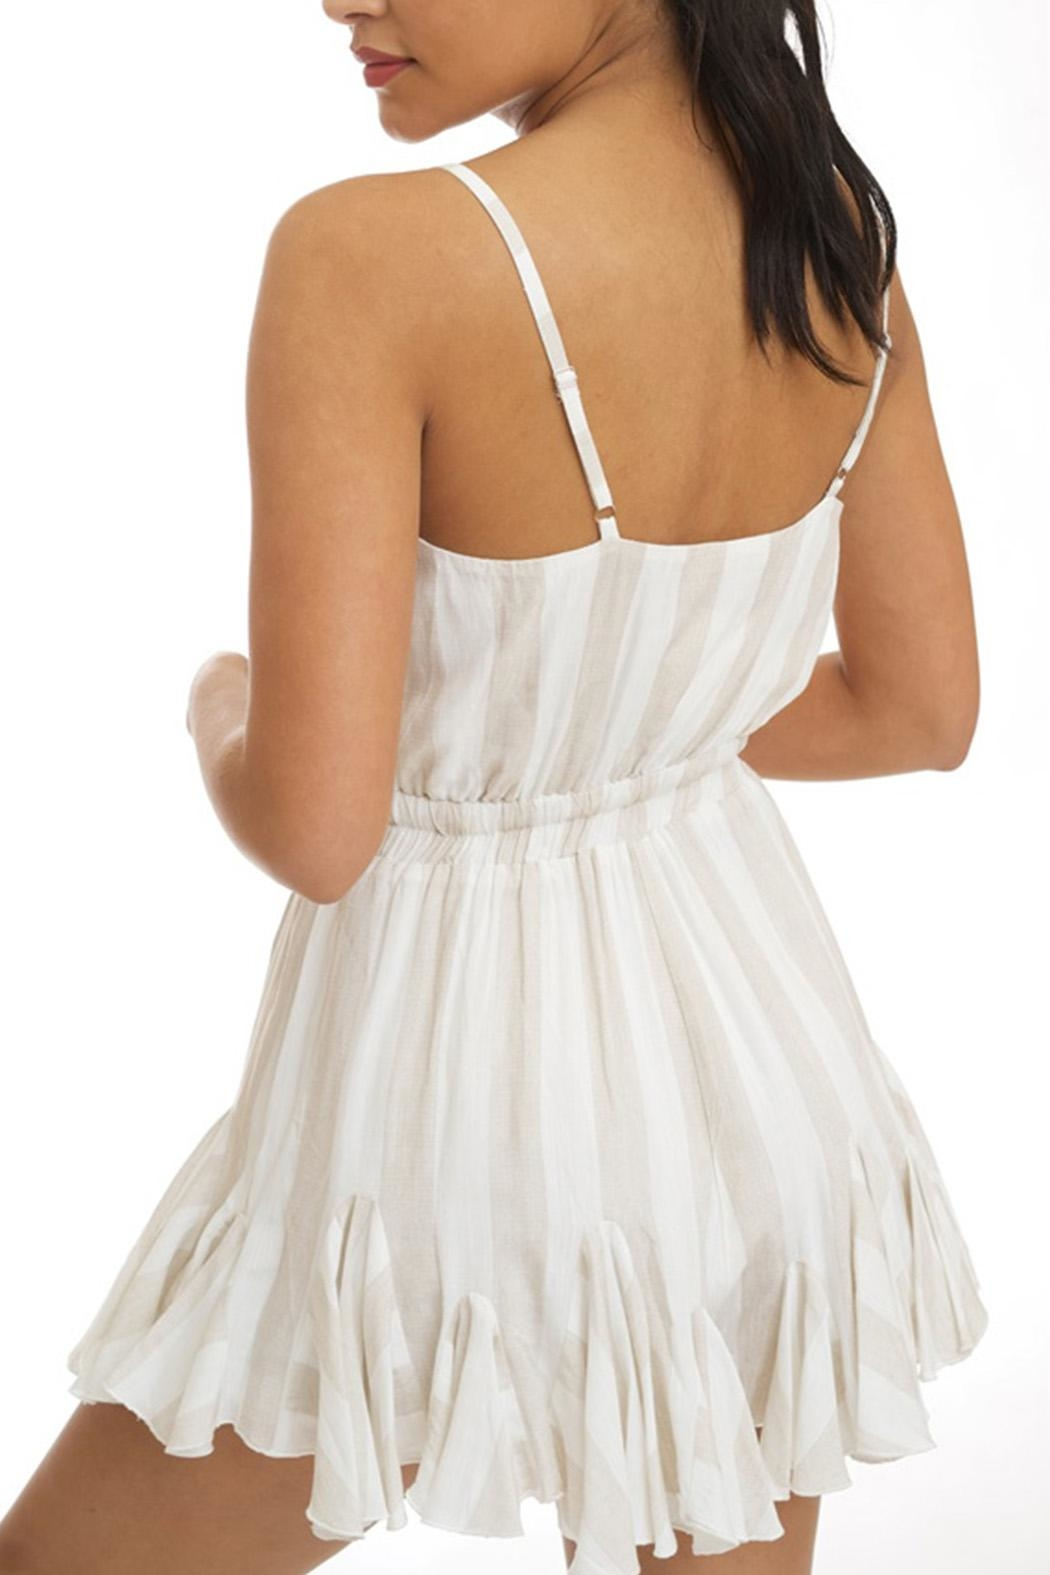 luxxel Neutral Stripe Romper - Front Full Image